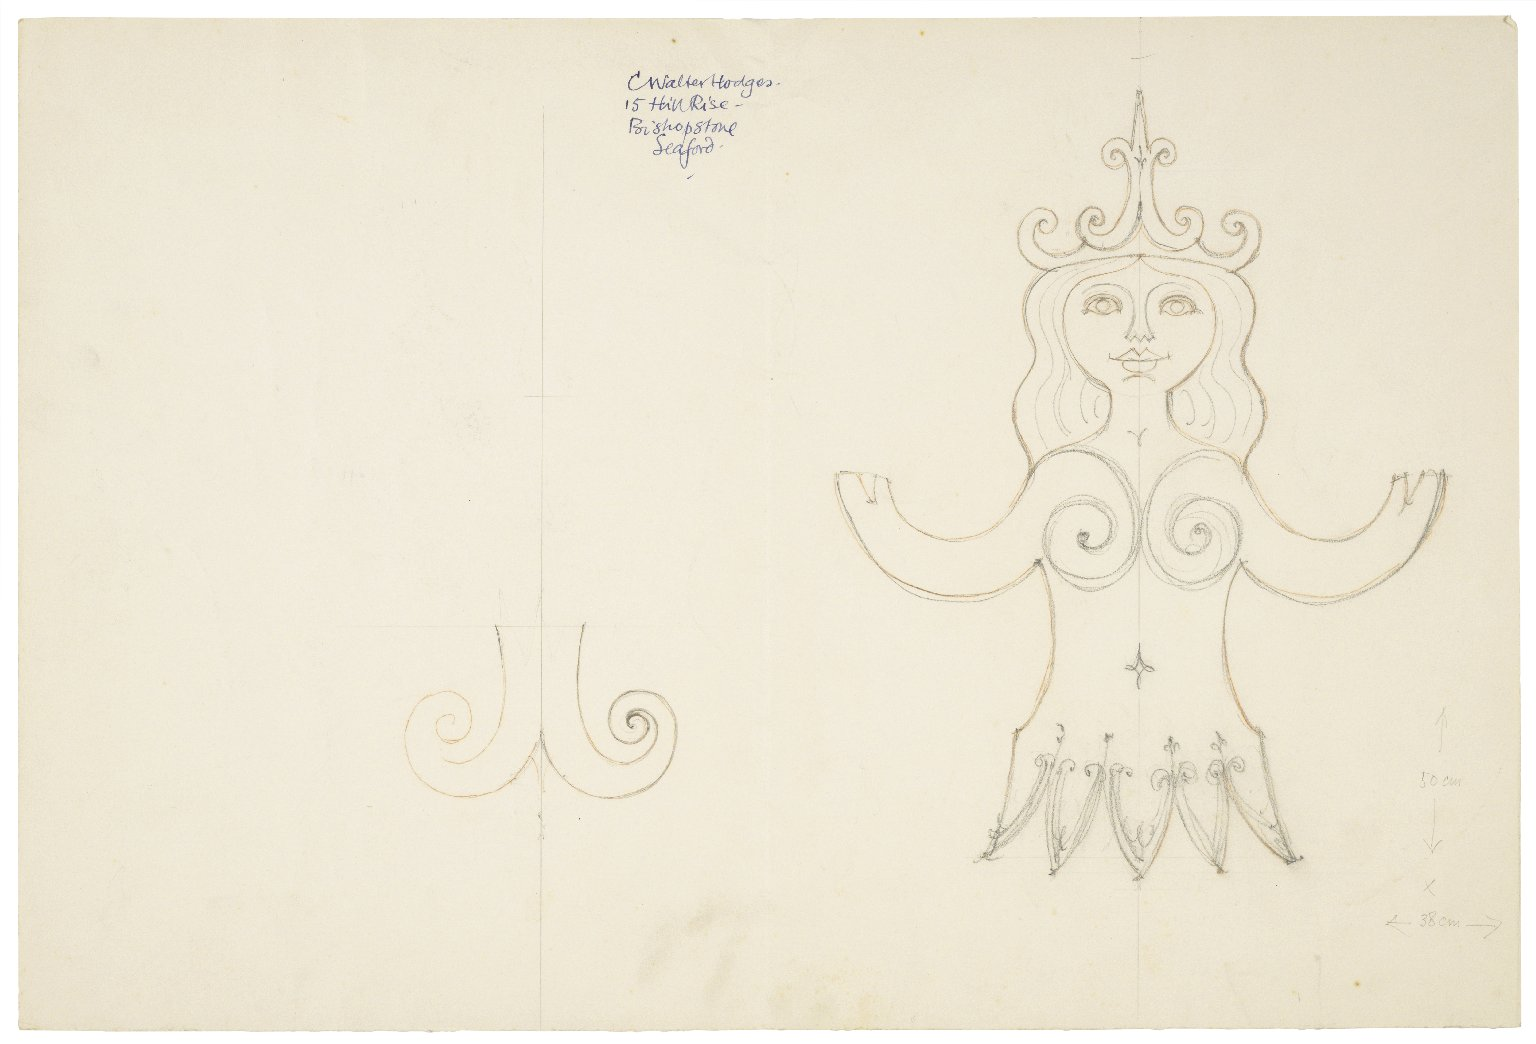 Sketch of an emblem for the Mermaid theatre